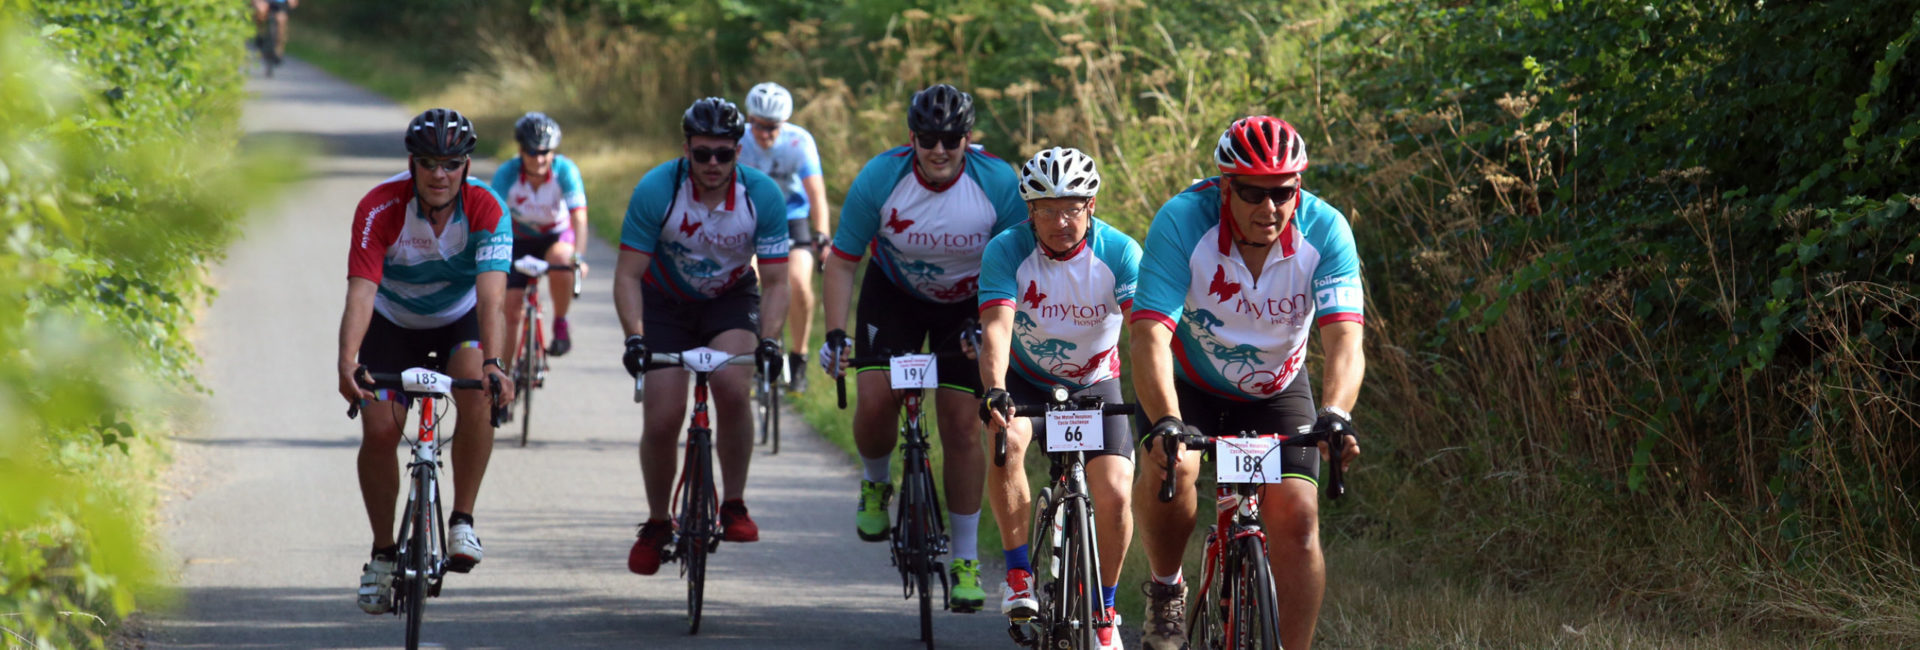 The Myton Hospices Cycle Challenge 2019 - Flex Slider